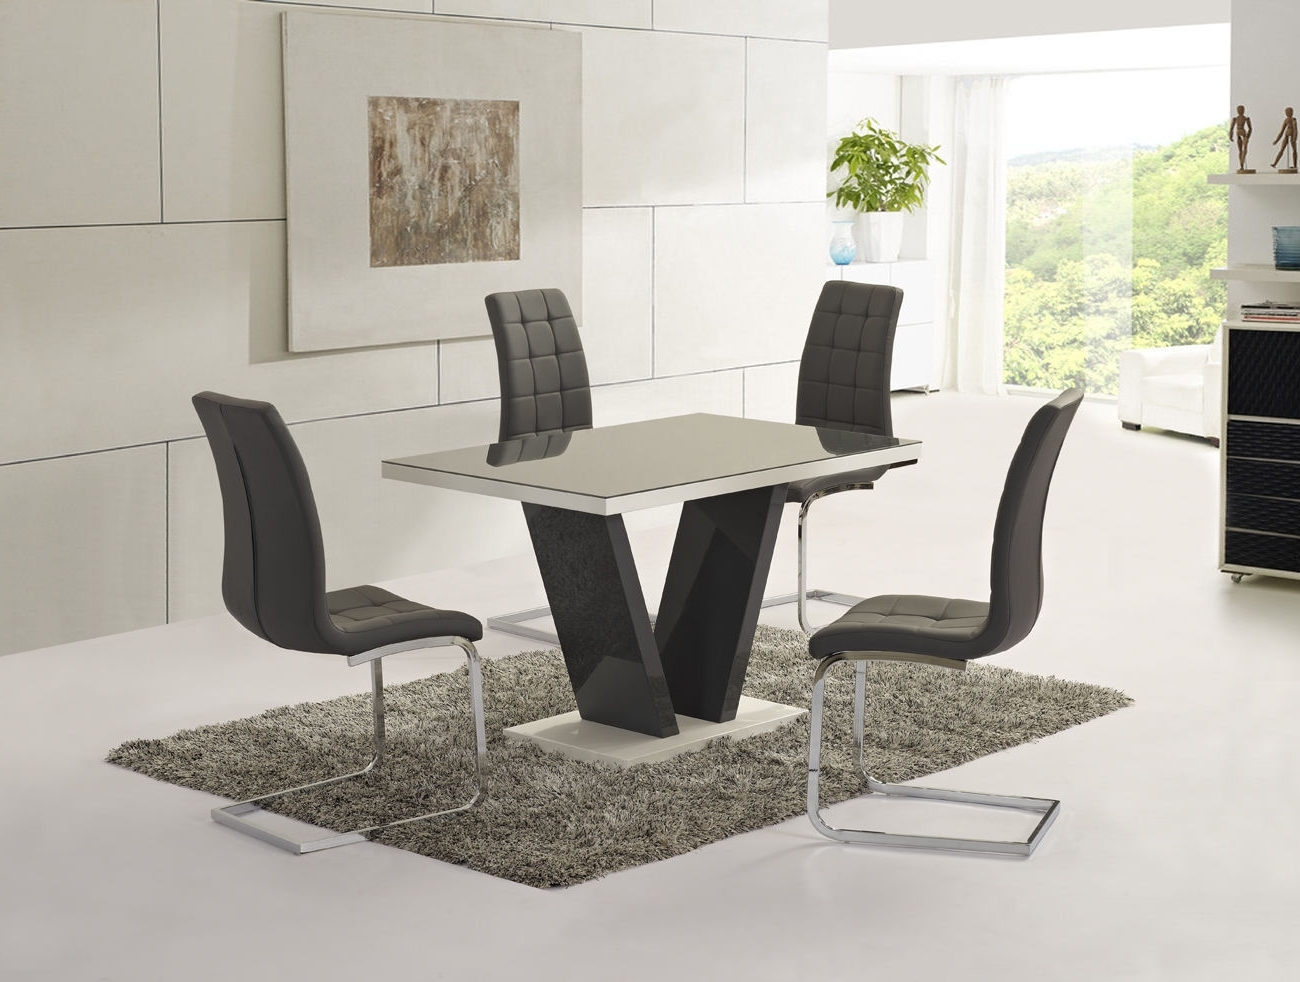 Ga Vico Gloss Grey Glass Top Designer 160Cm Dining Set – 4 6 Grey In Trendy Gloss Dining Sets (Gallery 7 of 25)